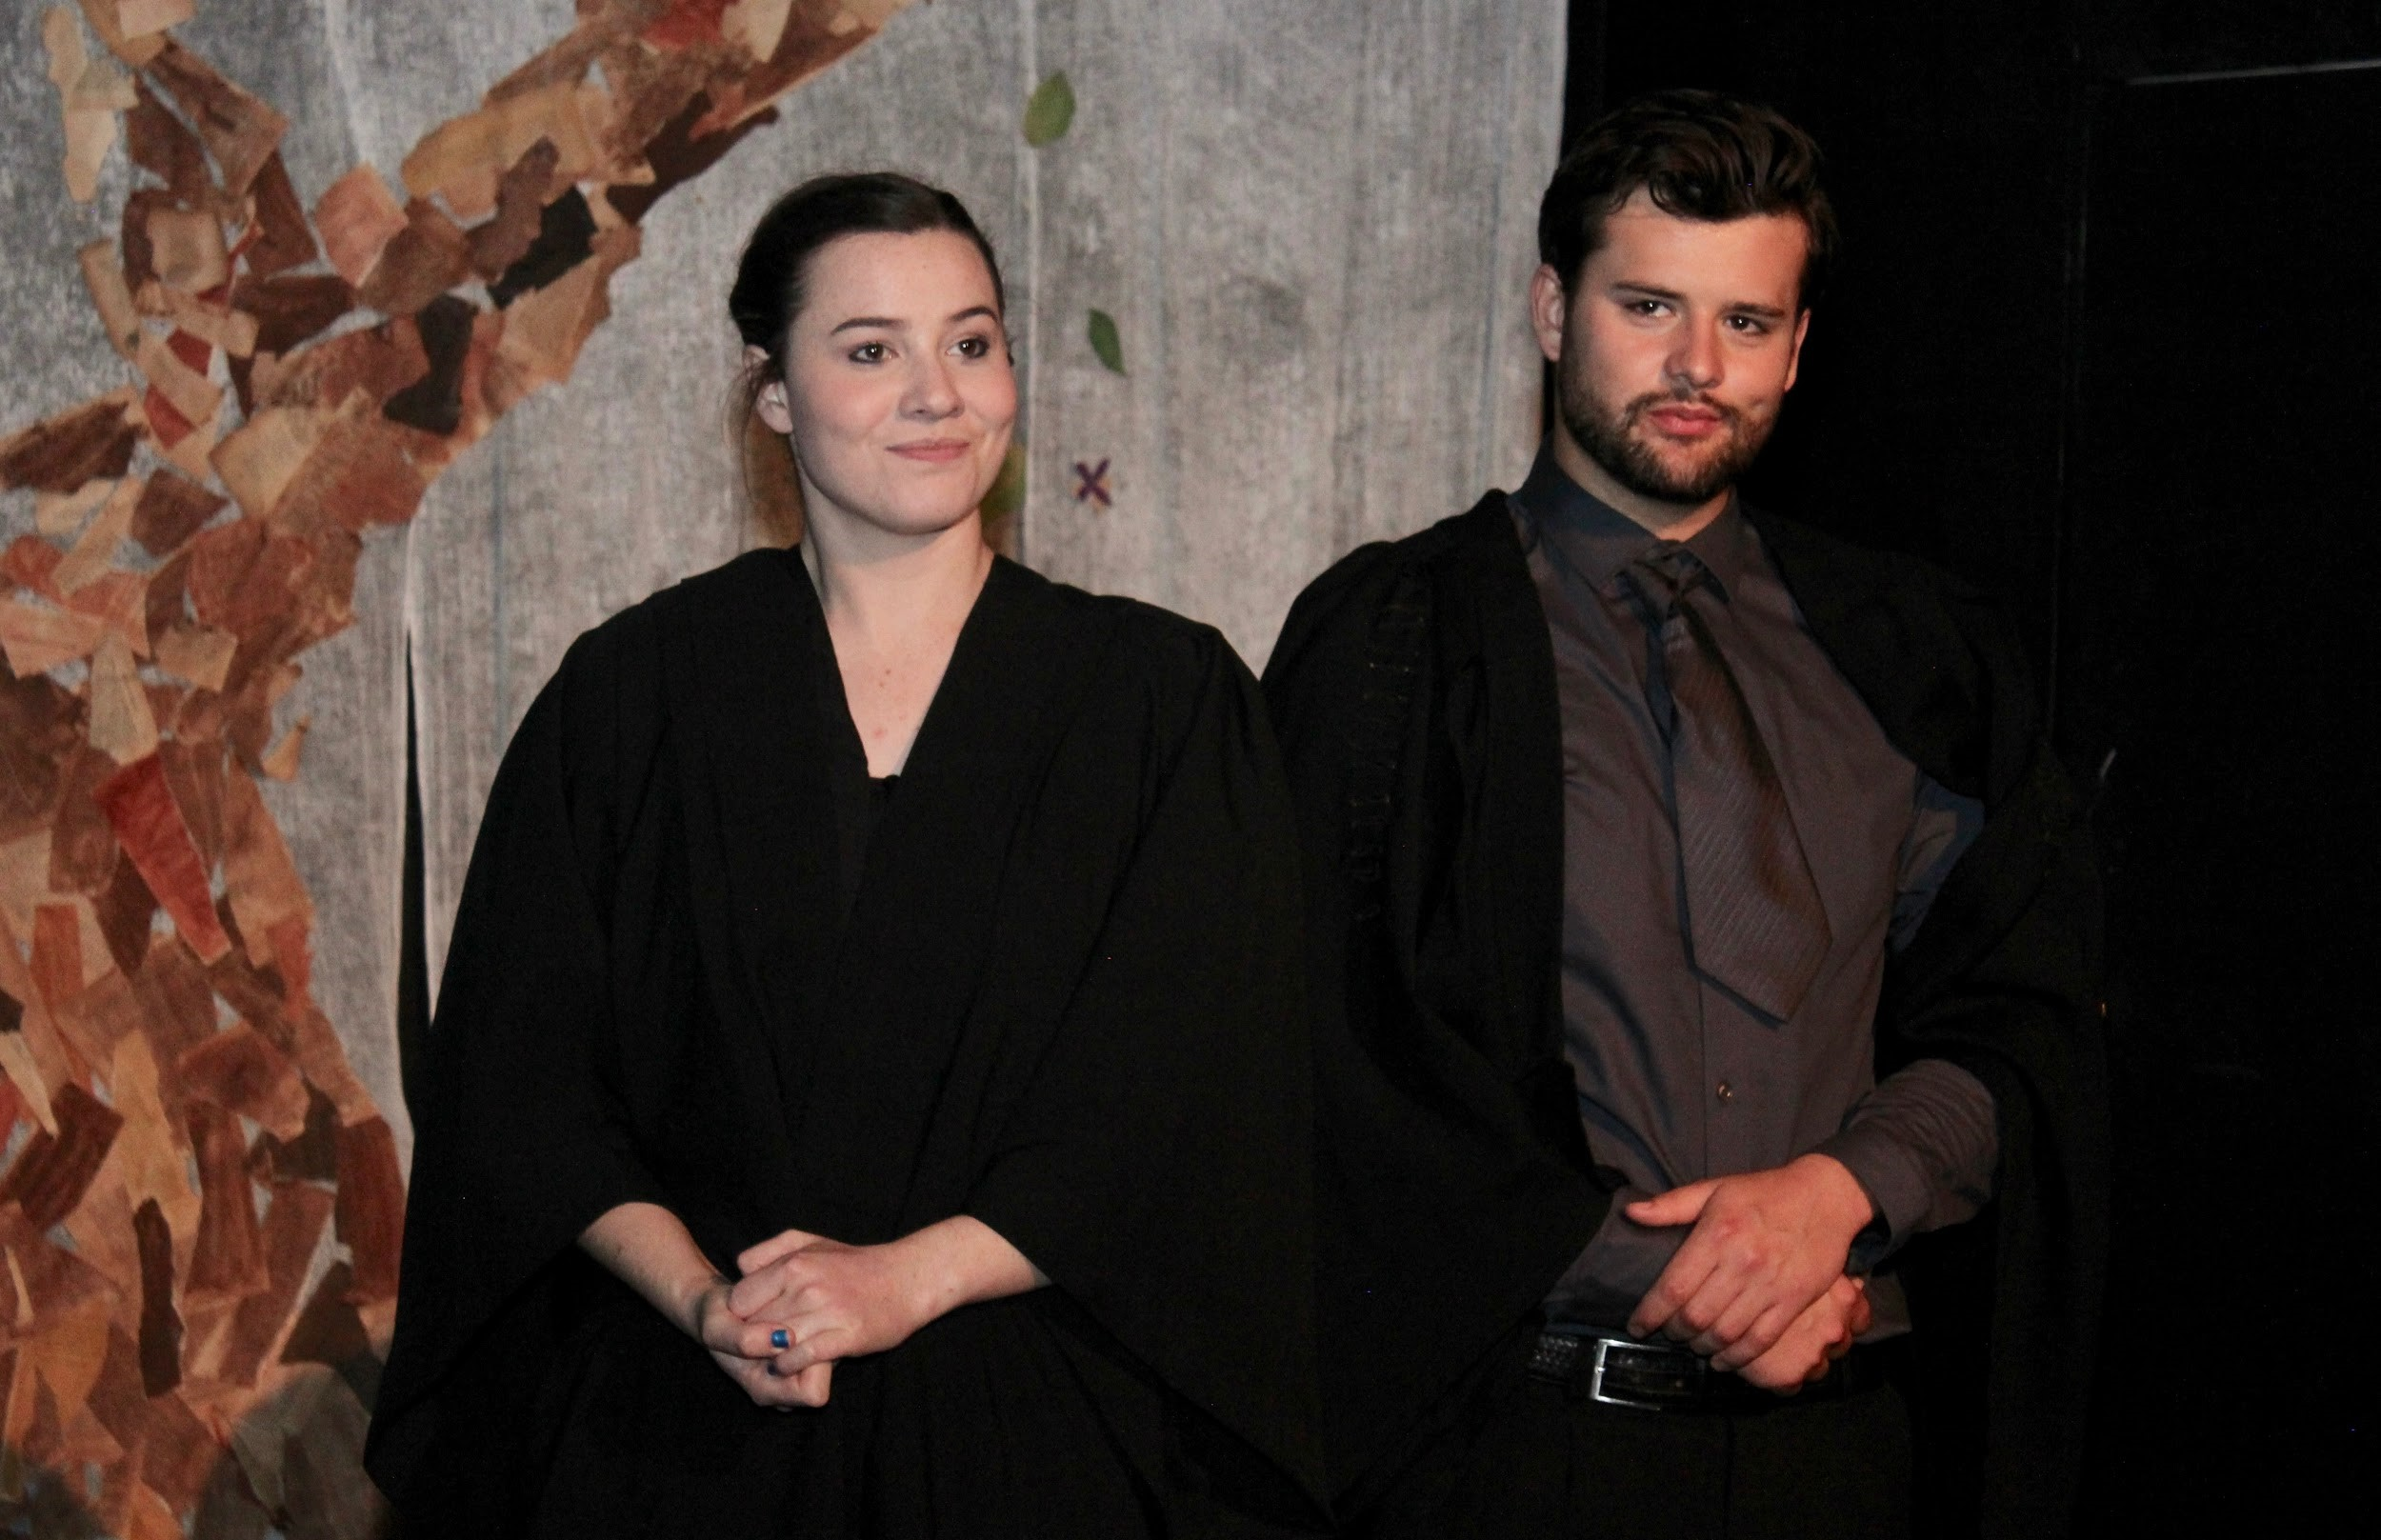 Greenberg and Crotty show their diverse acting abilities -